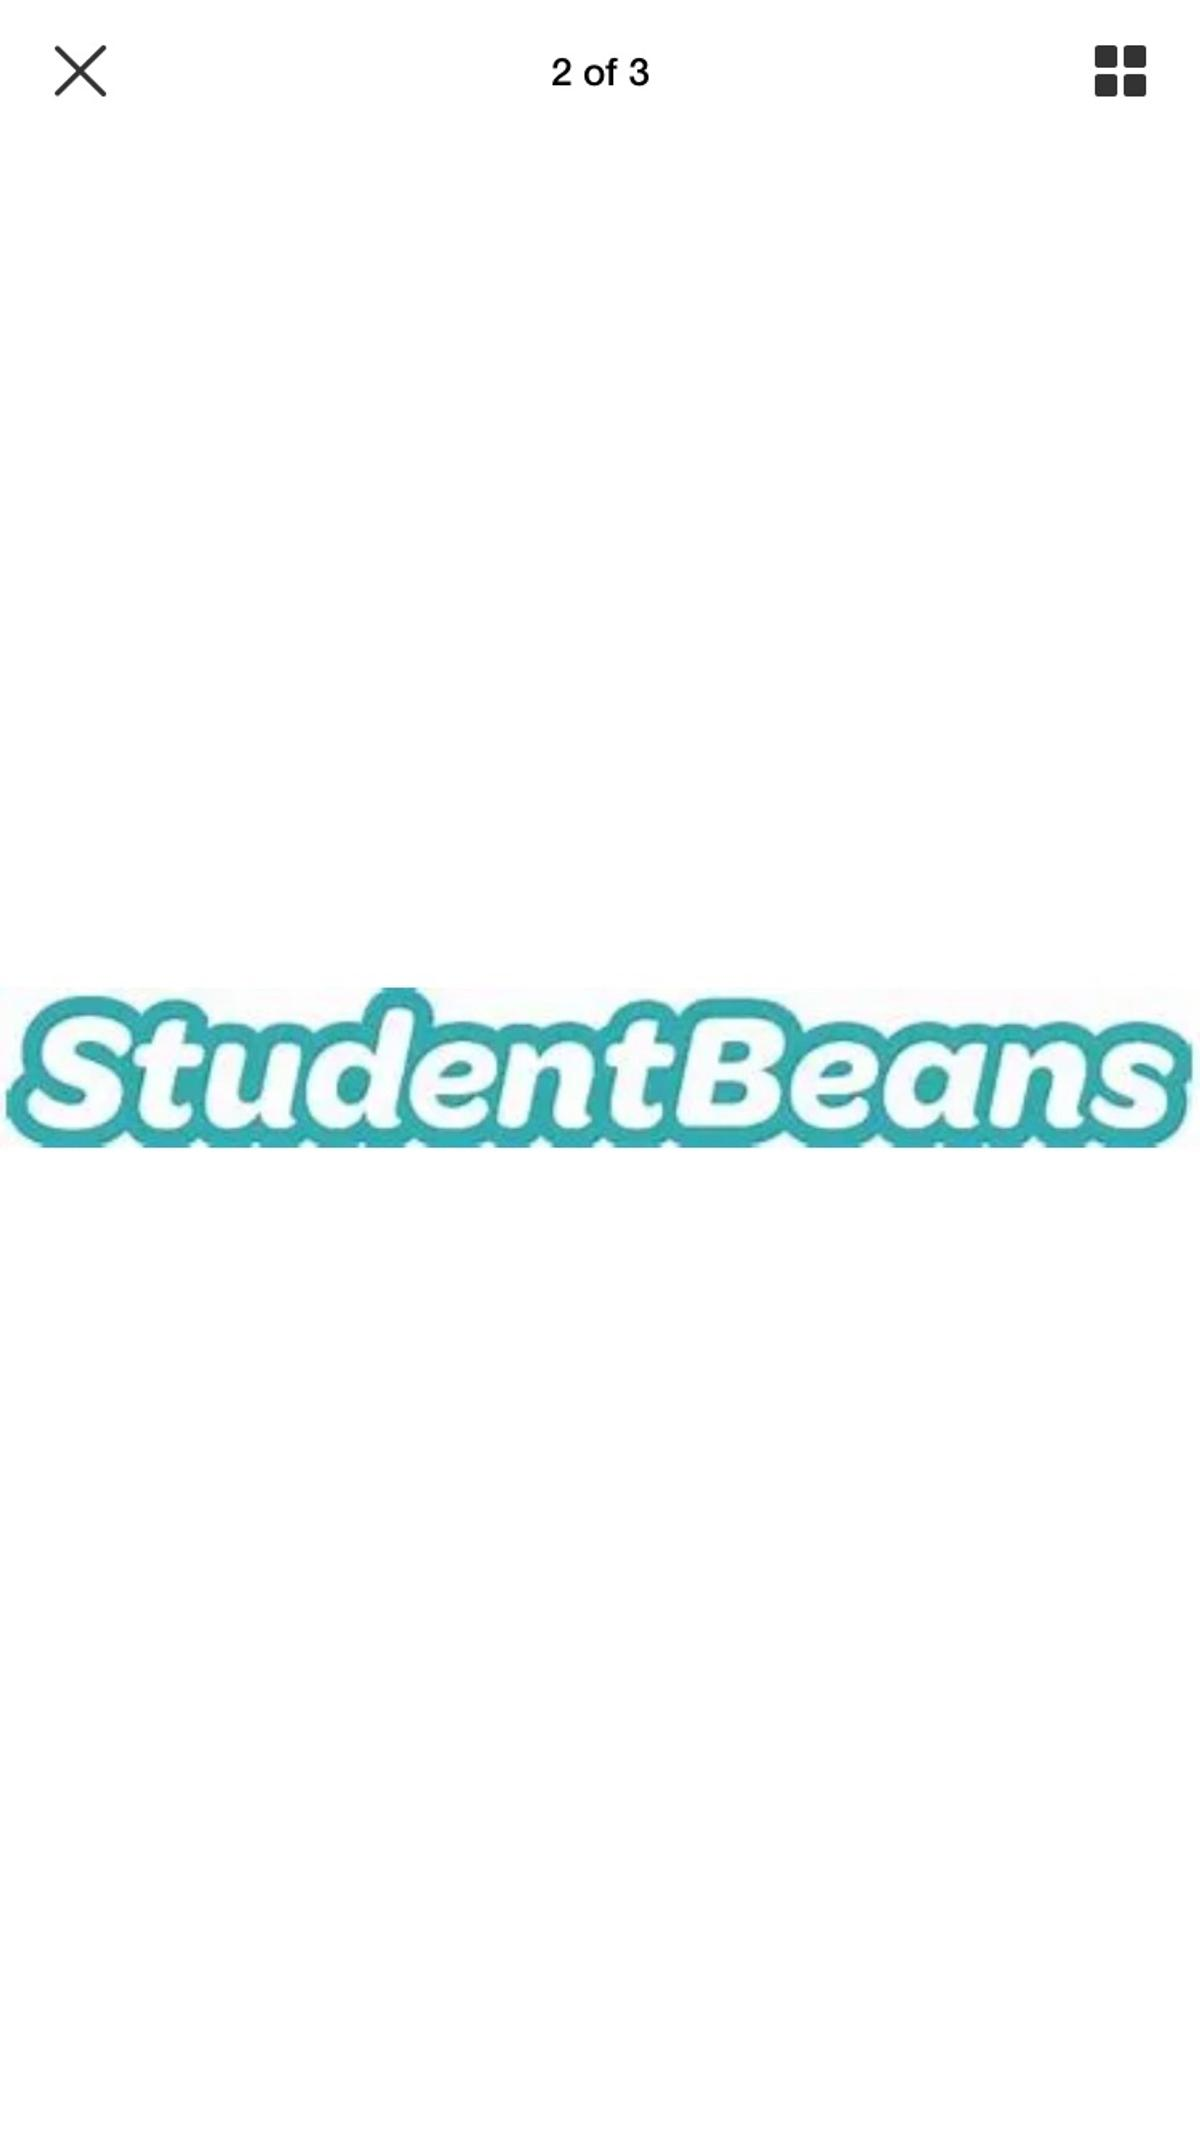 Alérgico Sinewi apretón  Any Unidays or student beans discount codes in SM4 London for £0.99 for  sale | Shpock